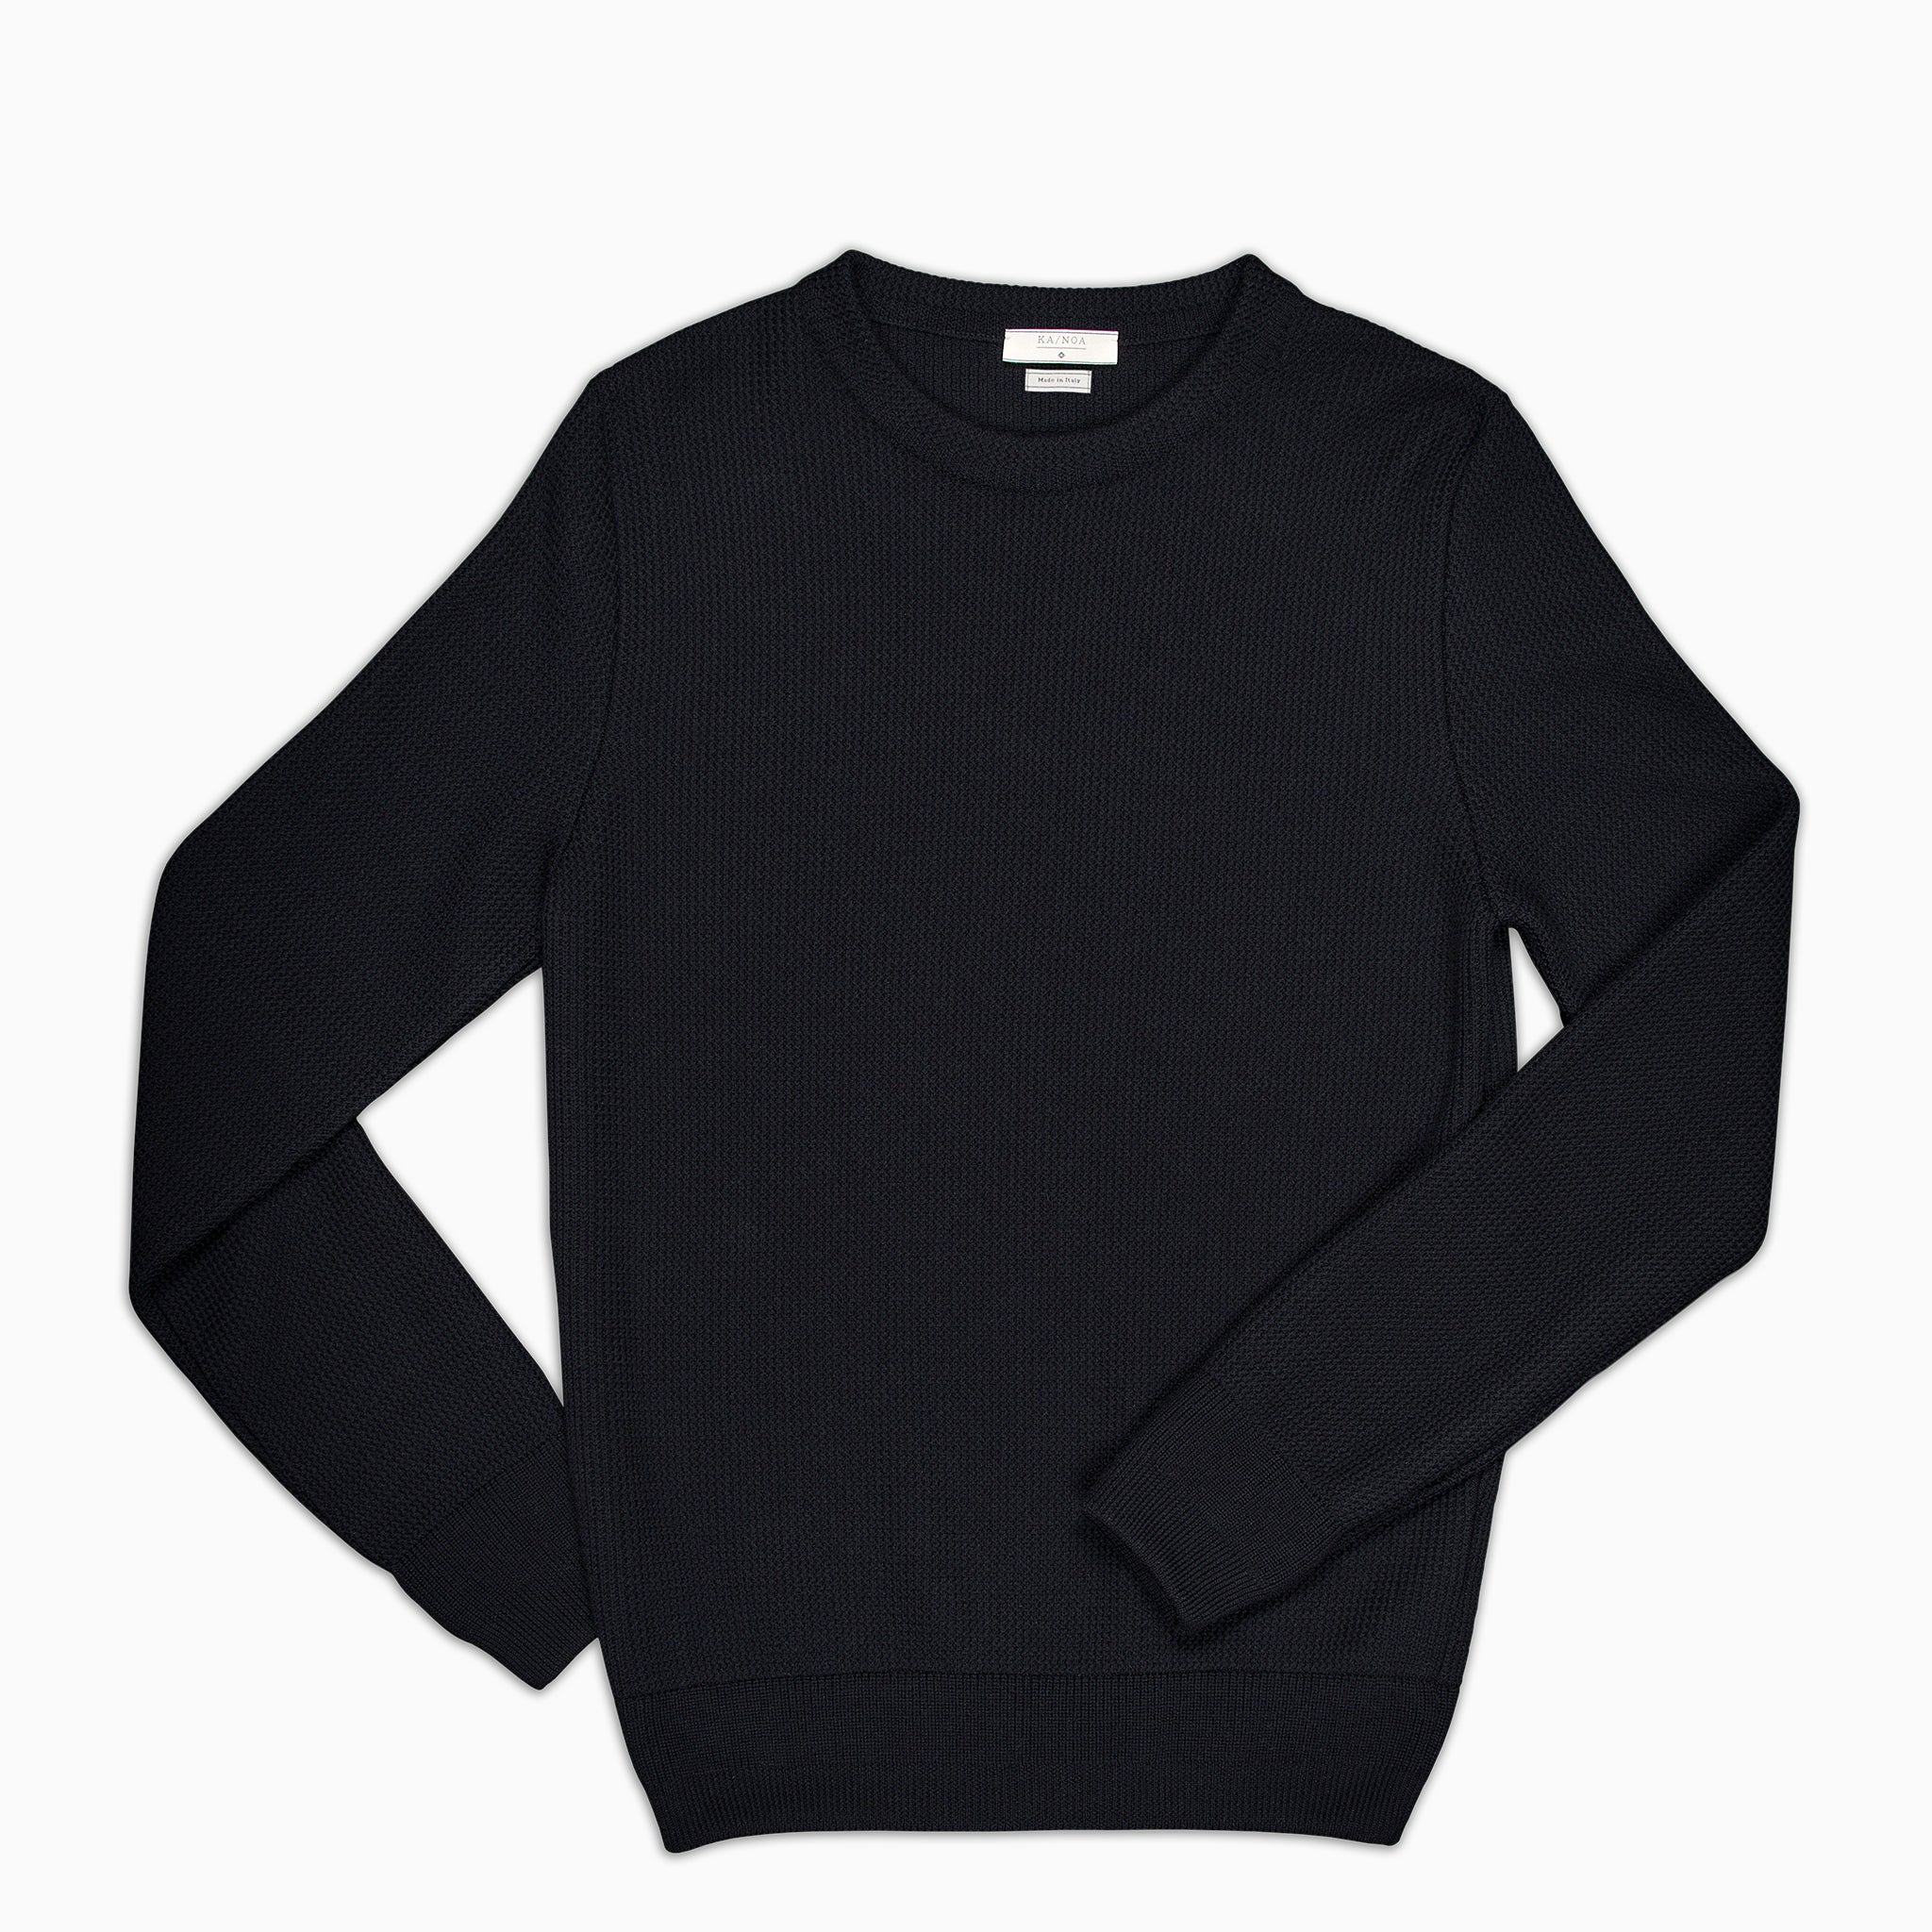 Aristotel crew-neck jumper